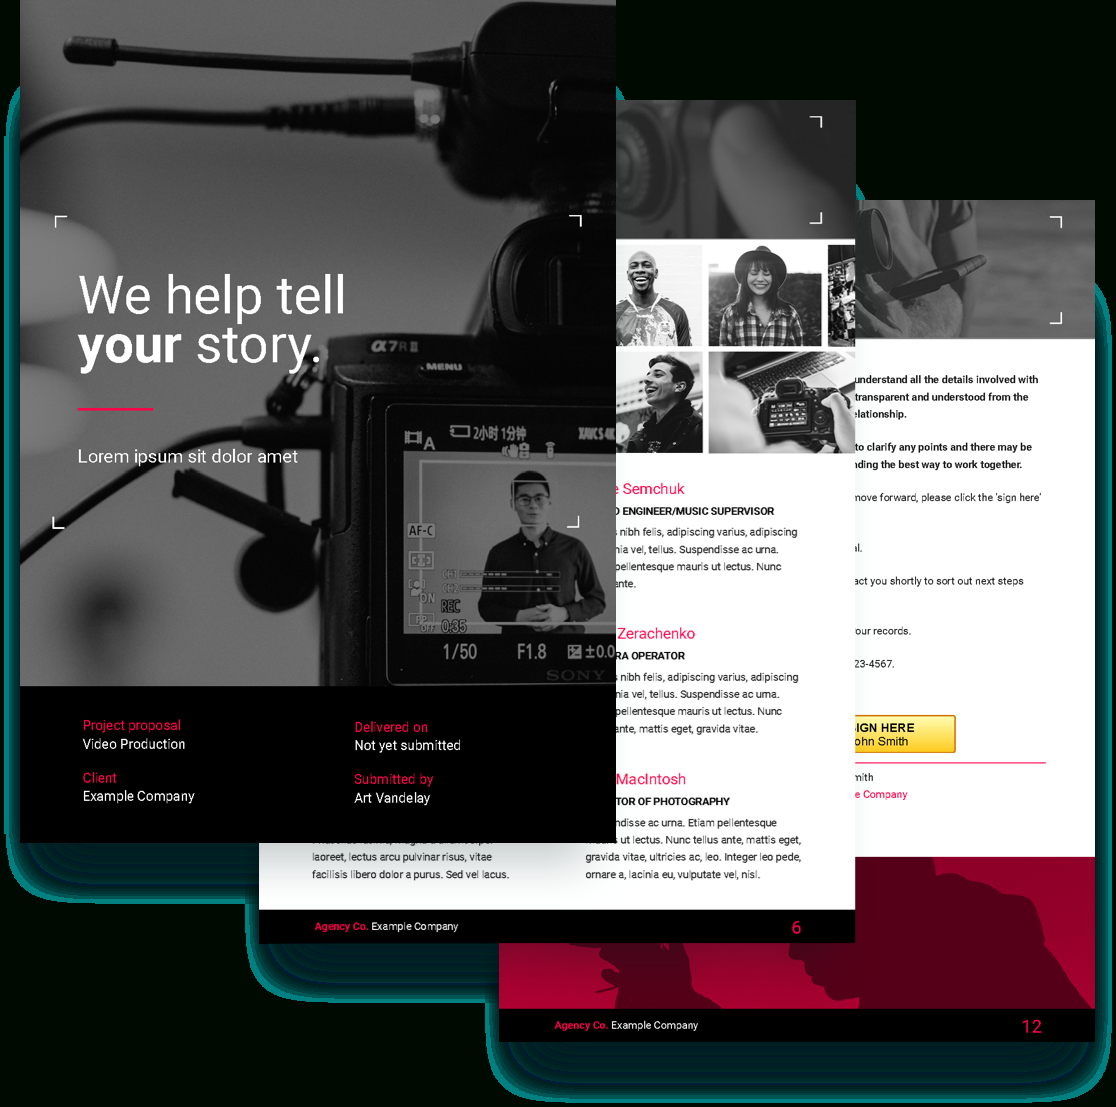 Video Proposal Template  Free Sample  Proposify In Free Internet Advertising Contract Template